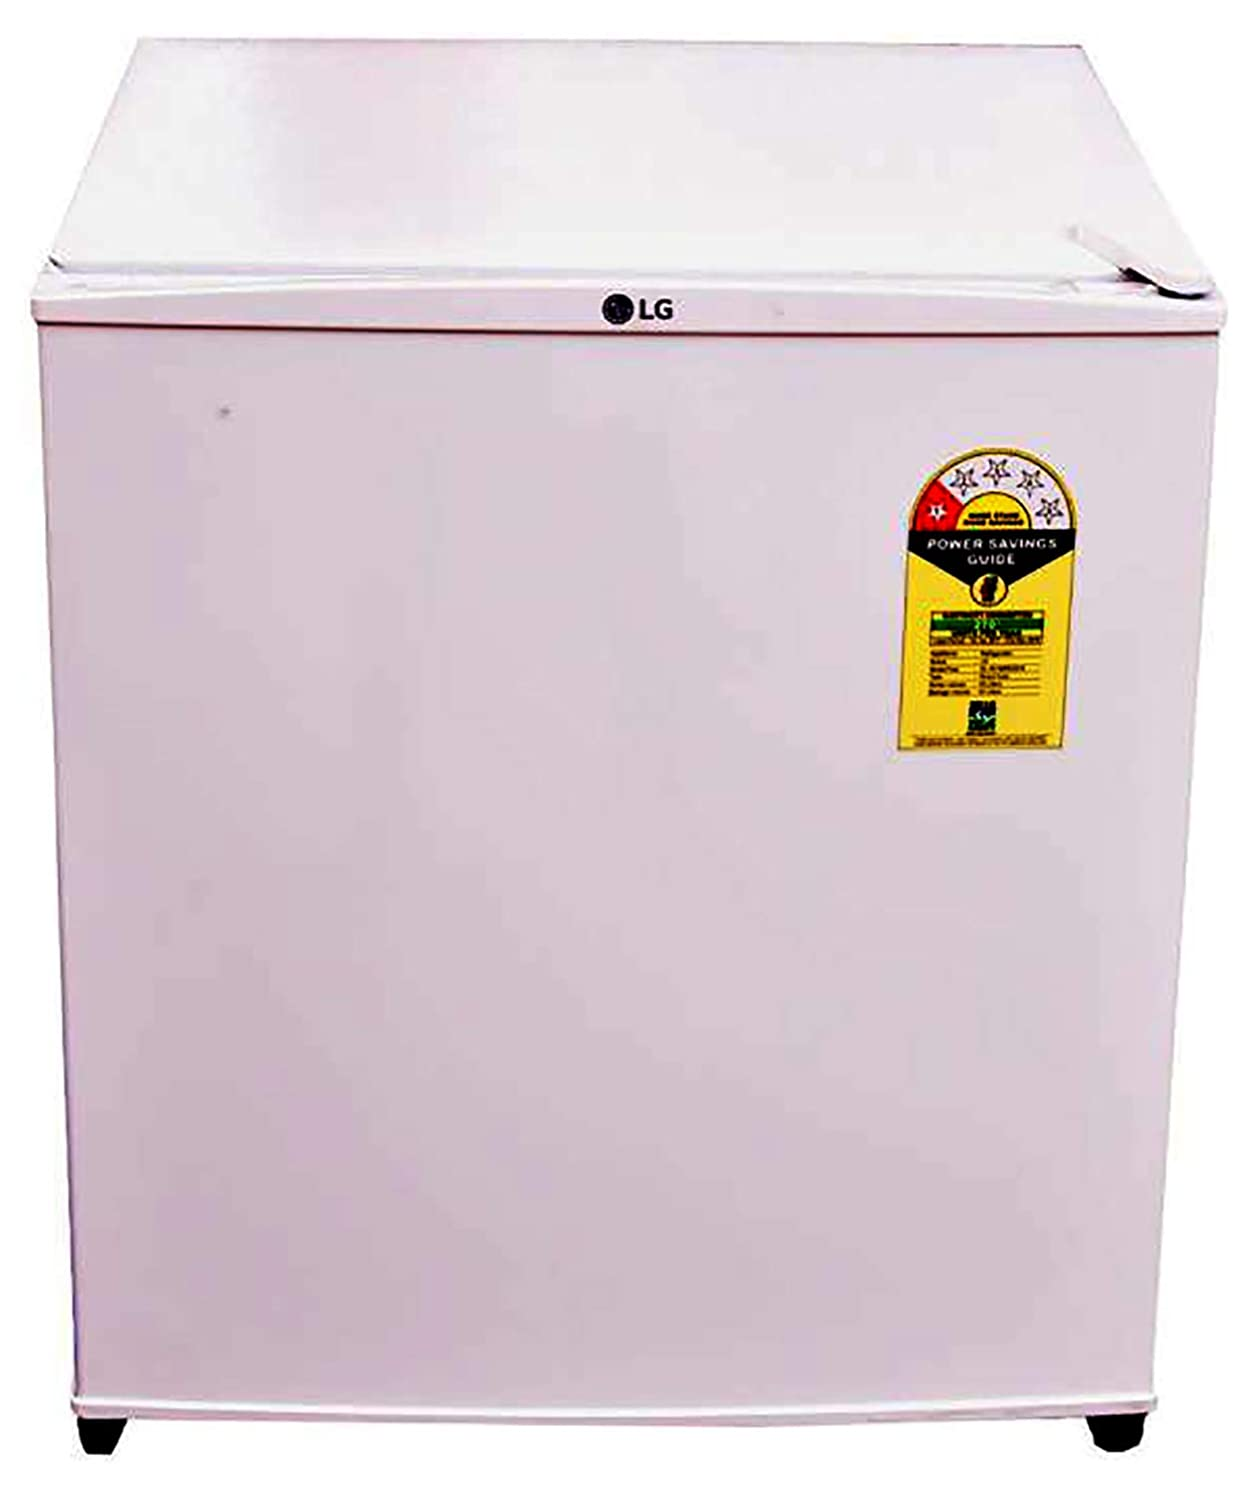 LG 45 L Direct-cool Single Door Refrigerator